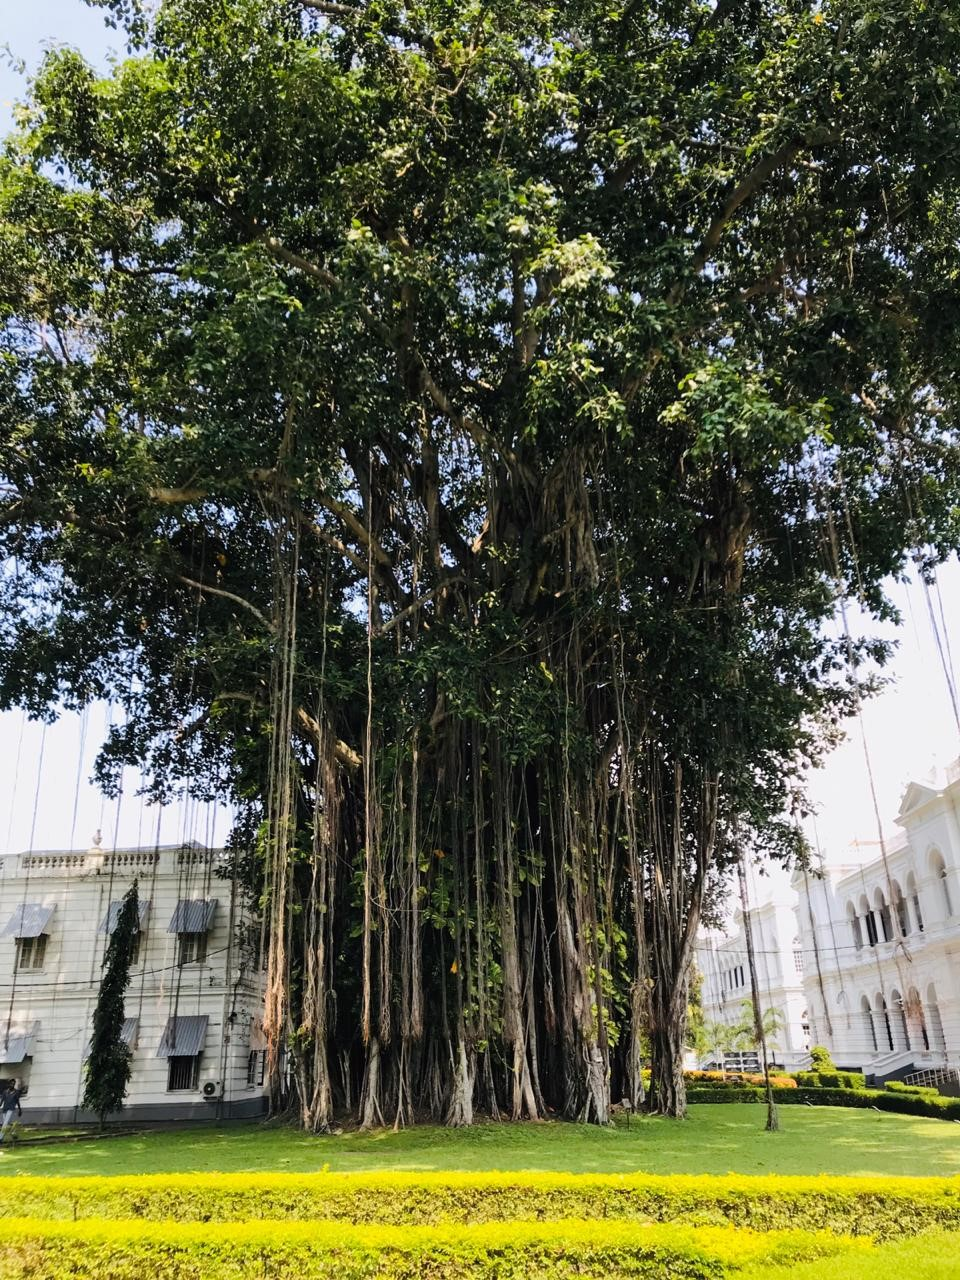 Banyan Tree in the premises of the National Museum of Colombo